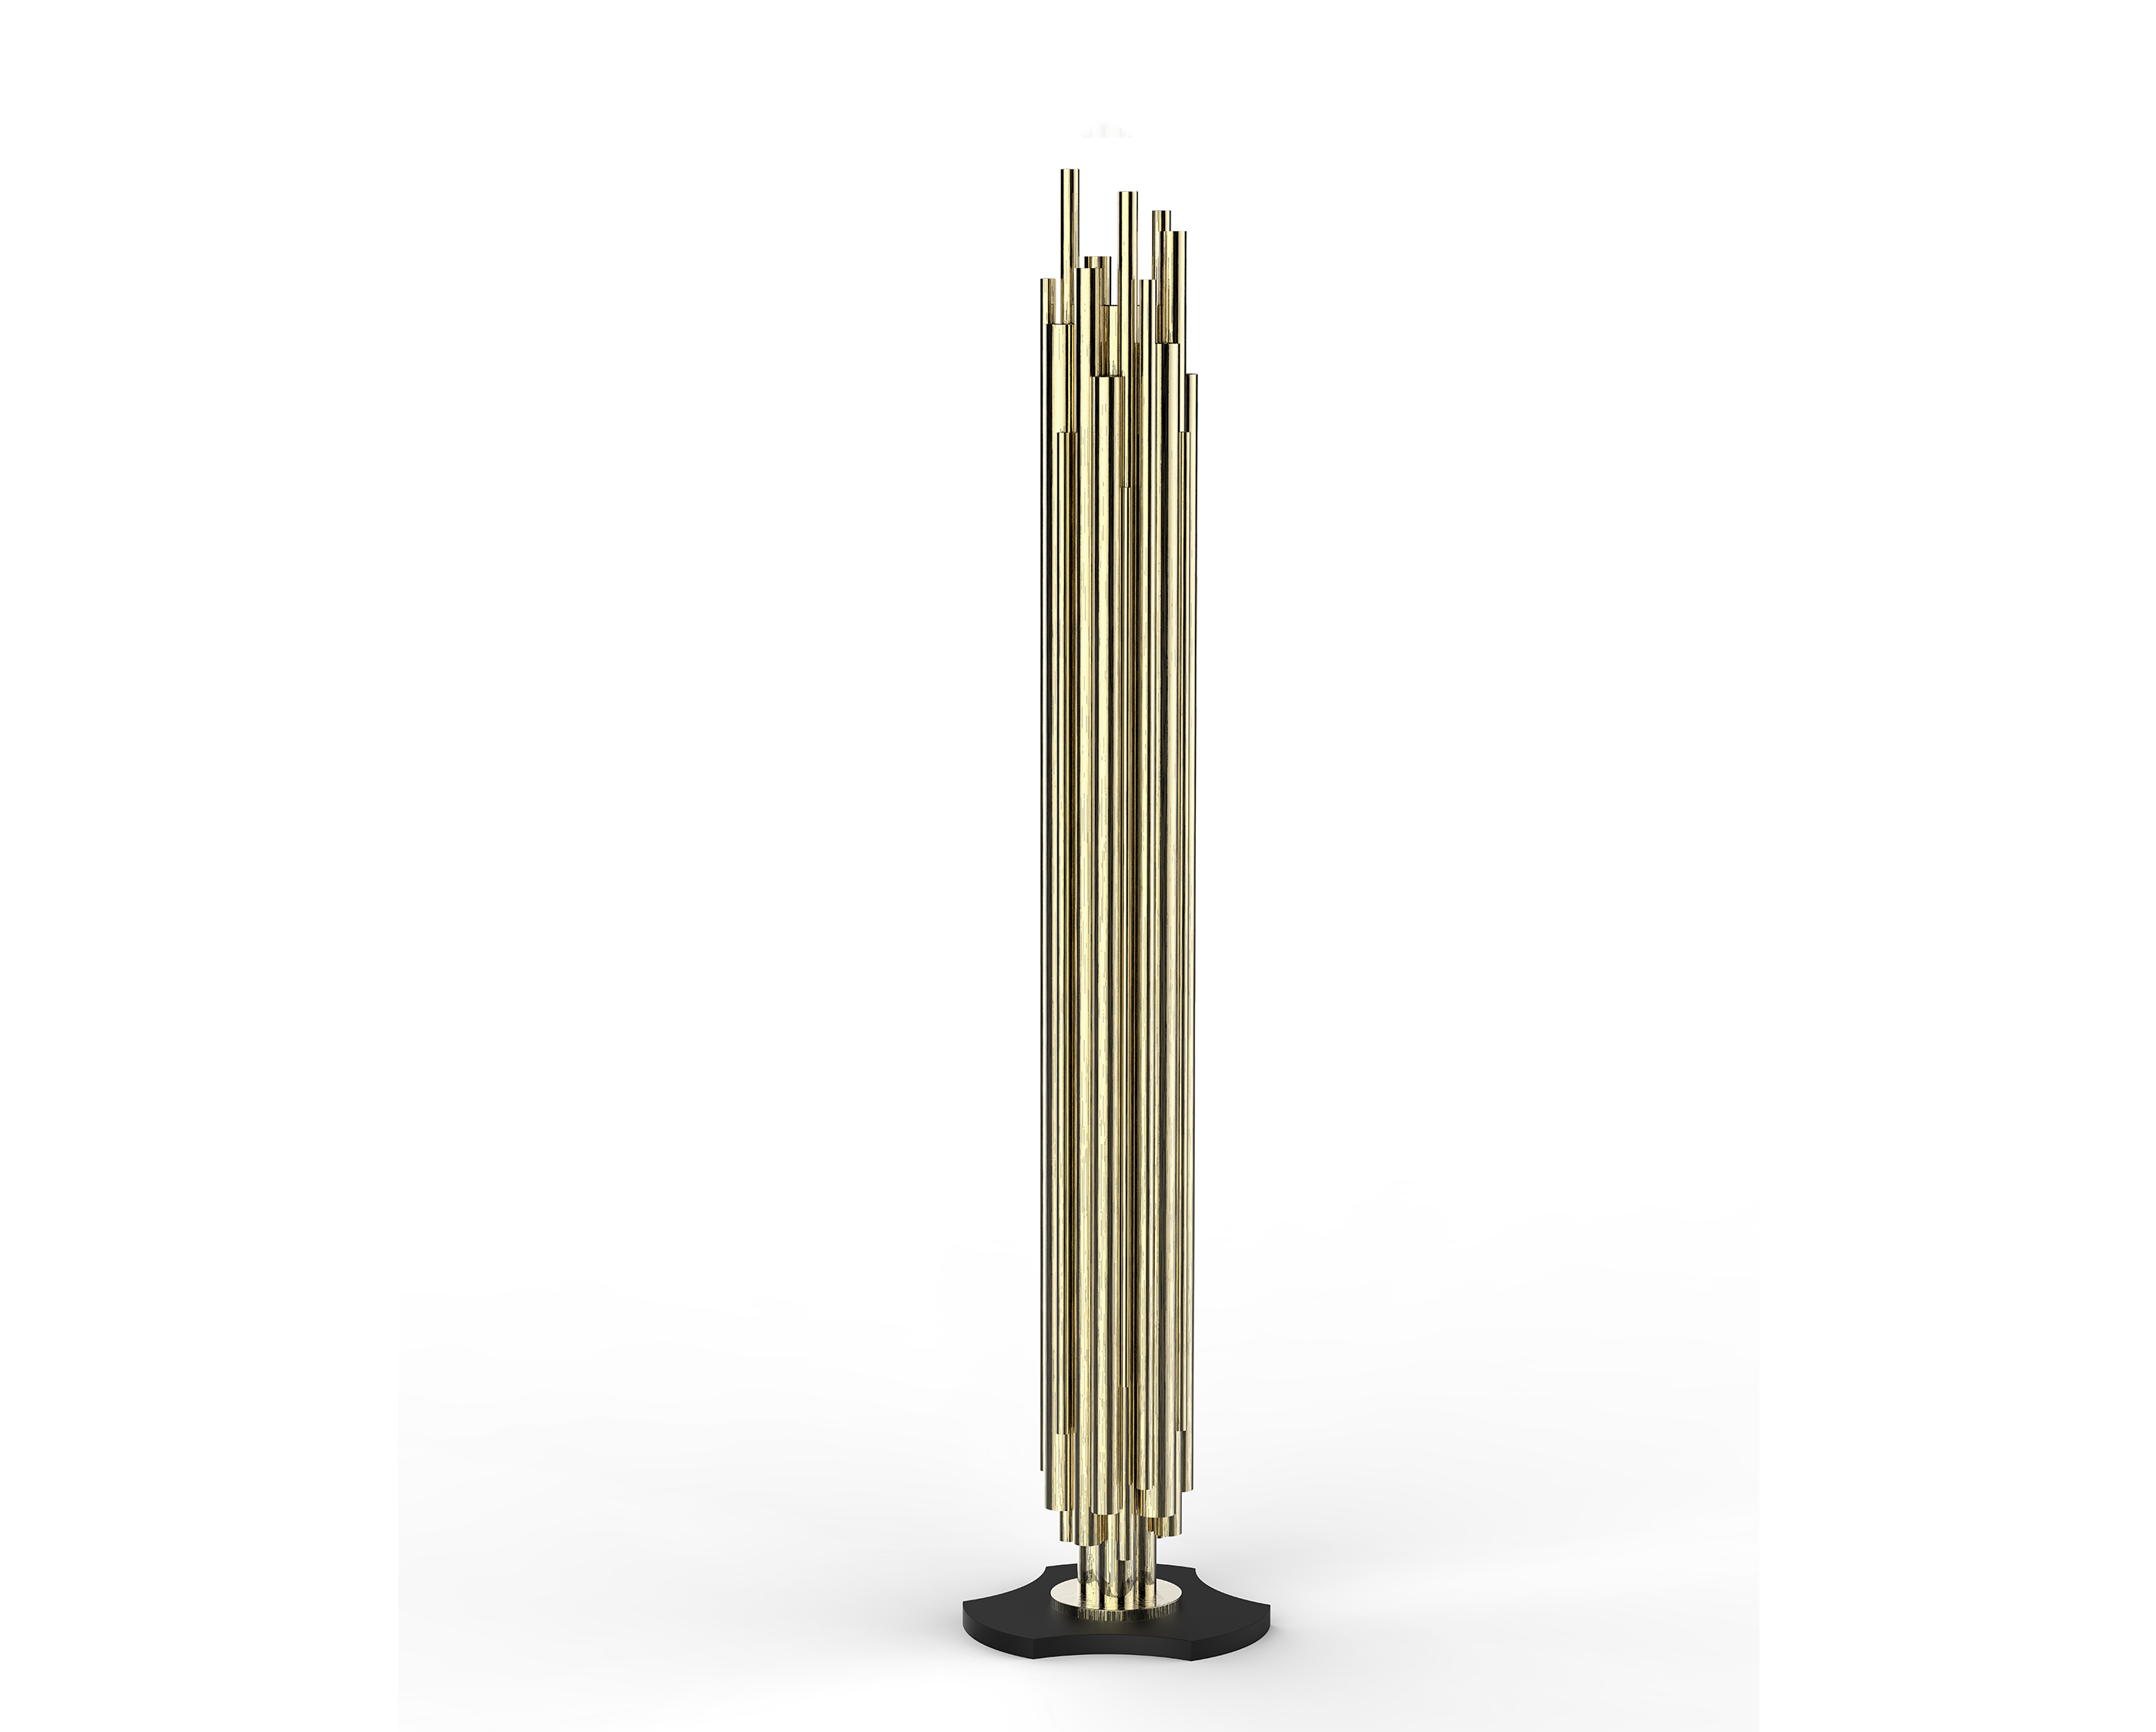 Bright Ideas A Modern Floor Lamp Like You've Never Seen Before 1 modern floor lamp Bright Ideas: A Modern Floor Lamp Like You've Never Seen Before Bright Ideas A Modern Floor Lamp Like Youve Never Seen Before 5